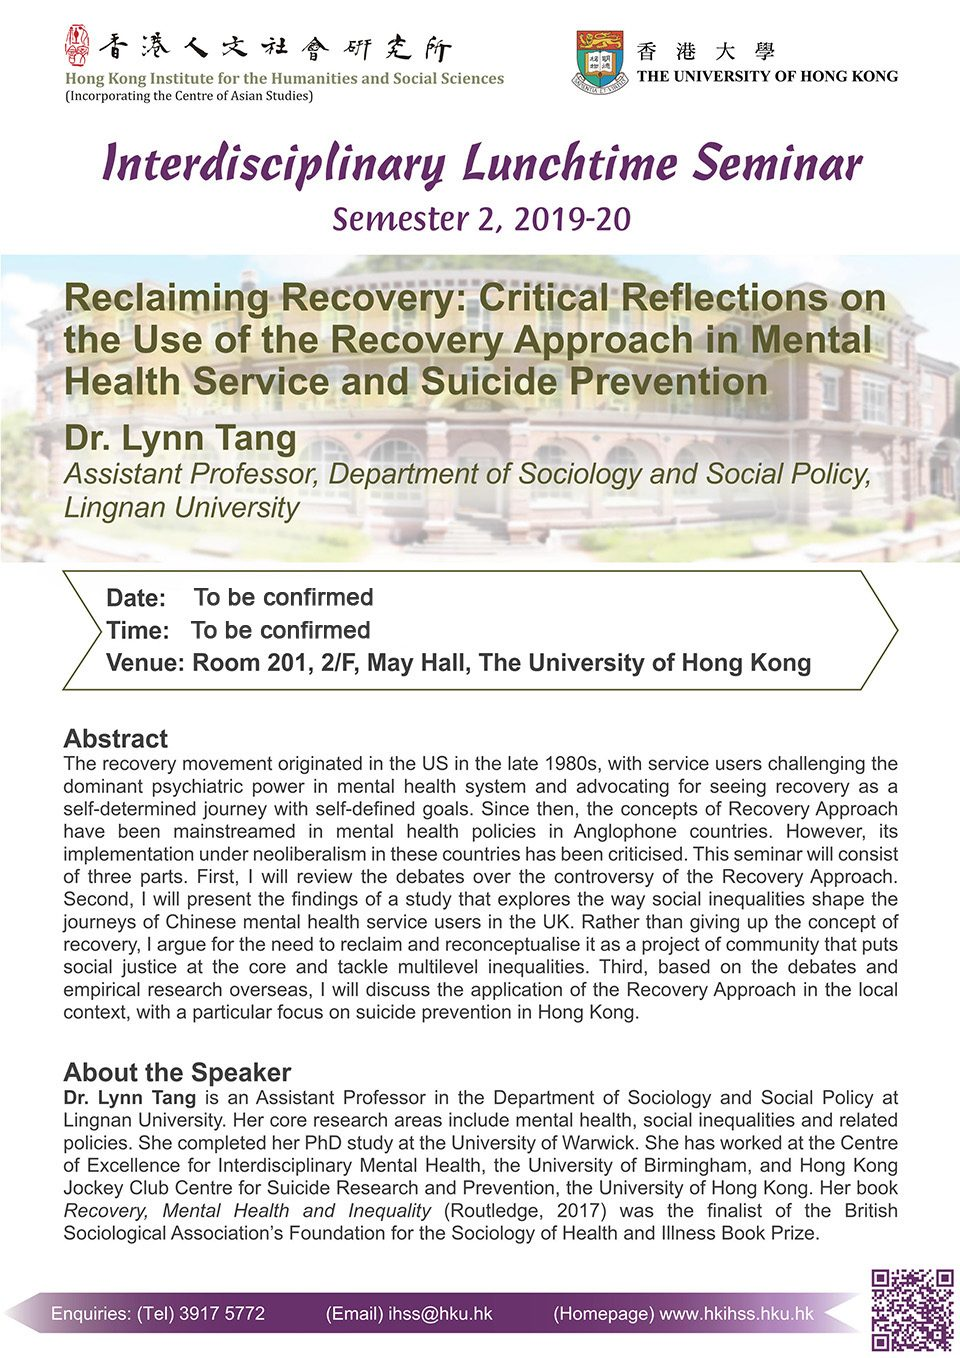 """Interdisciplinary Lunchtime Seminar on """"Reclaiming Recovery: Critical Reflections on the Use of the Recovery Approach in Mental Health Service and Suicide Prevention"""" by Dr. Lynn Tang"""